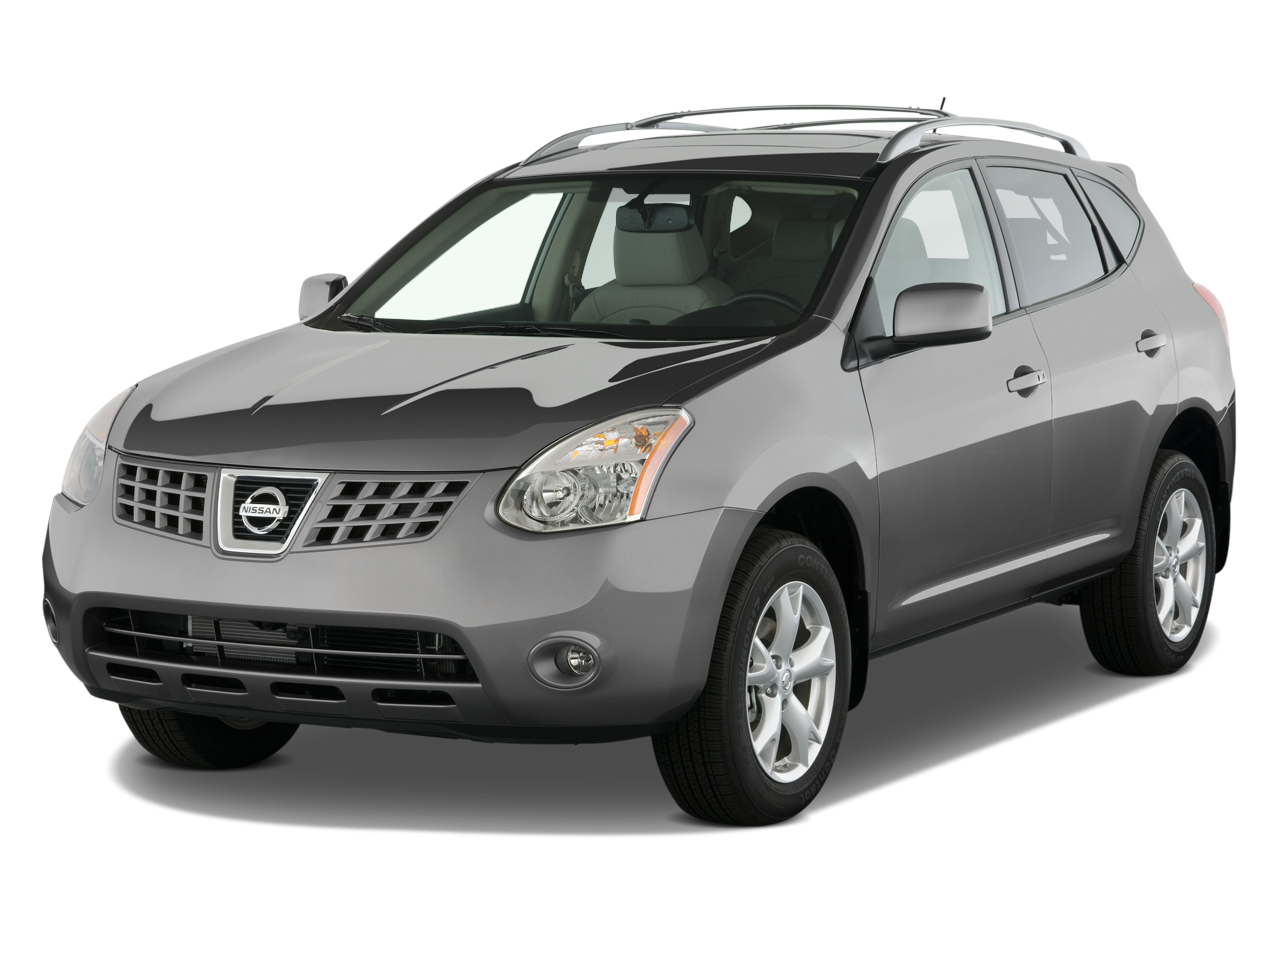 2012 Nissan Rogue Reviews Ratings Prices Consumer Reports